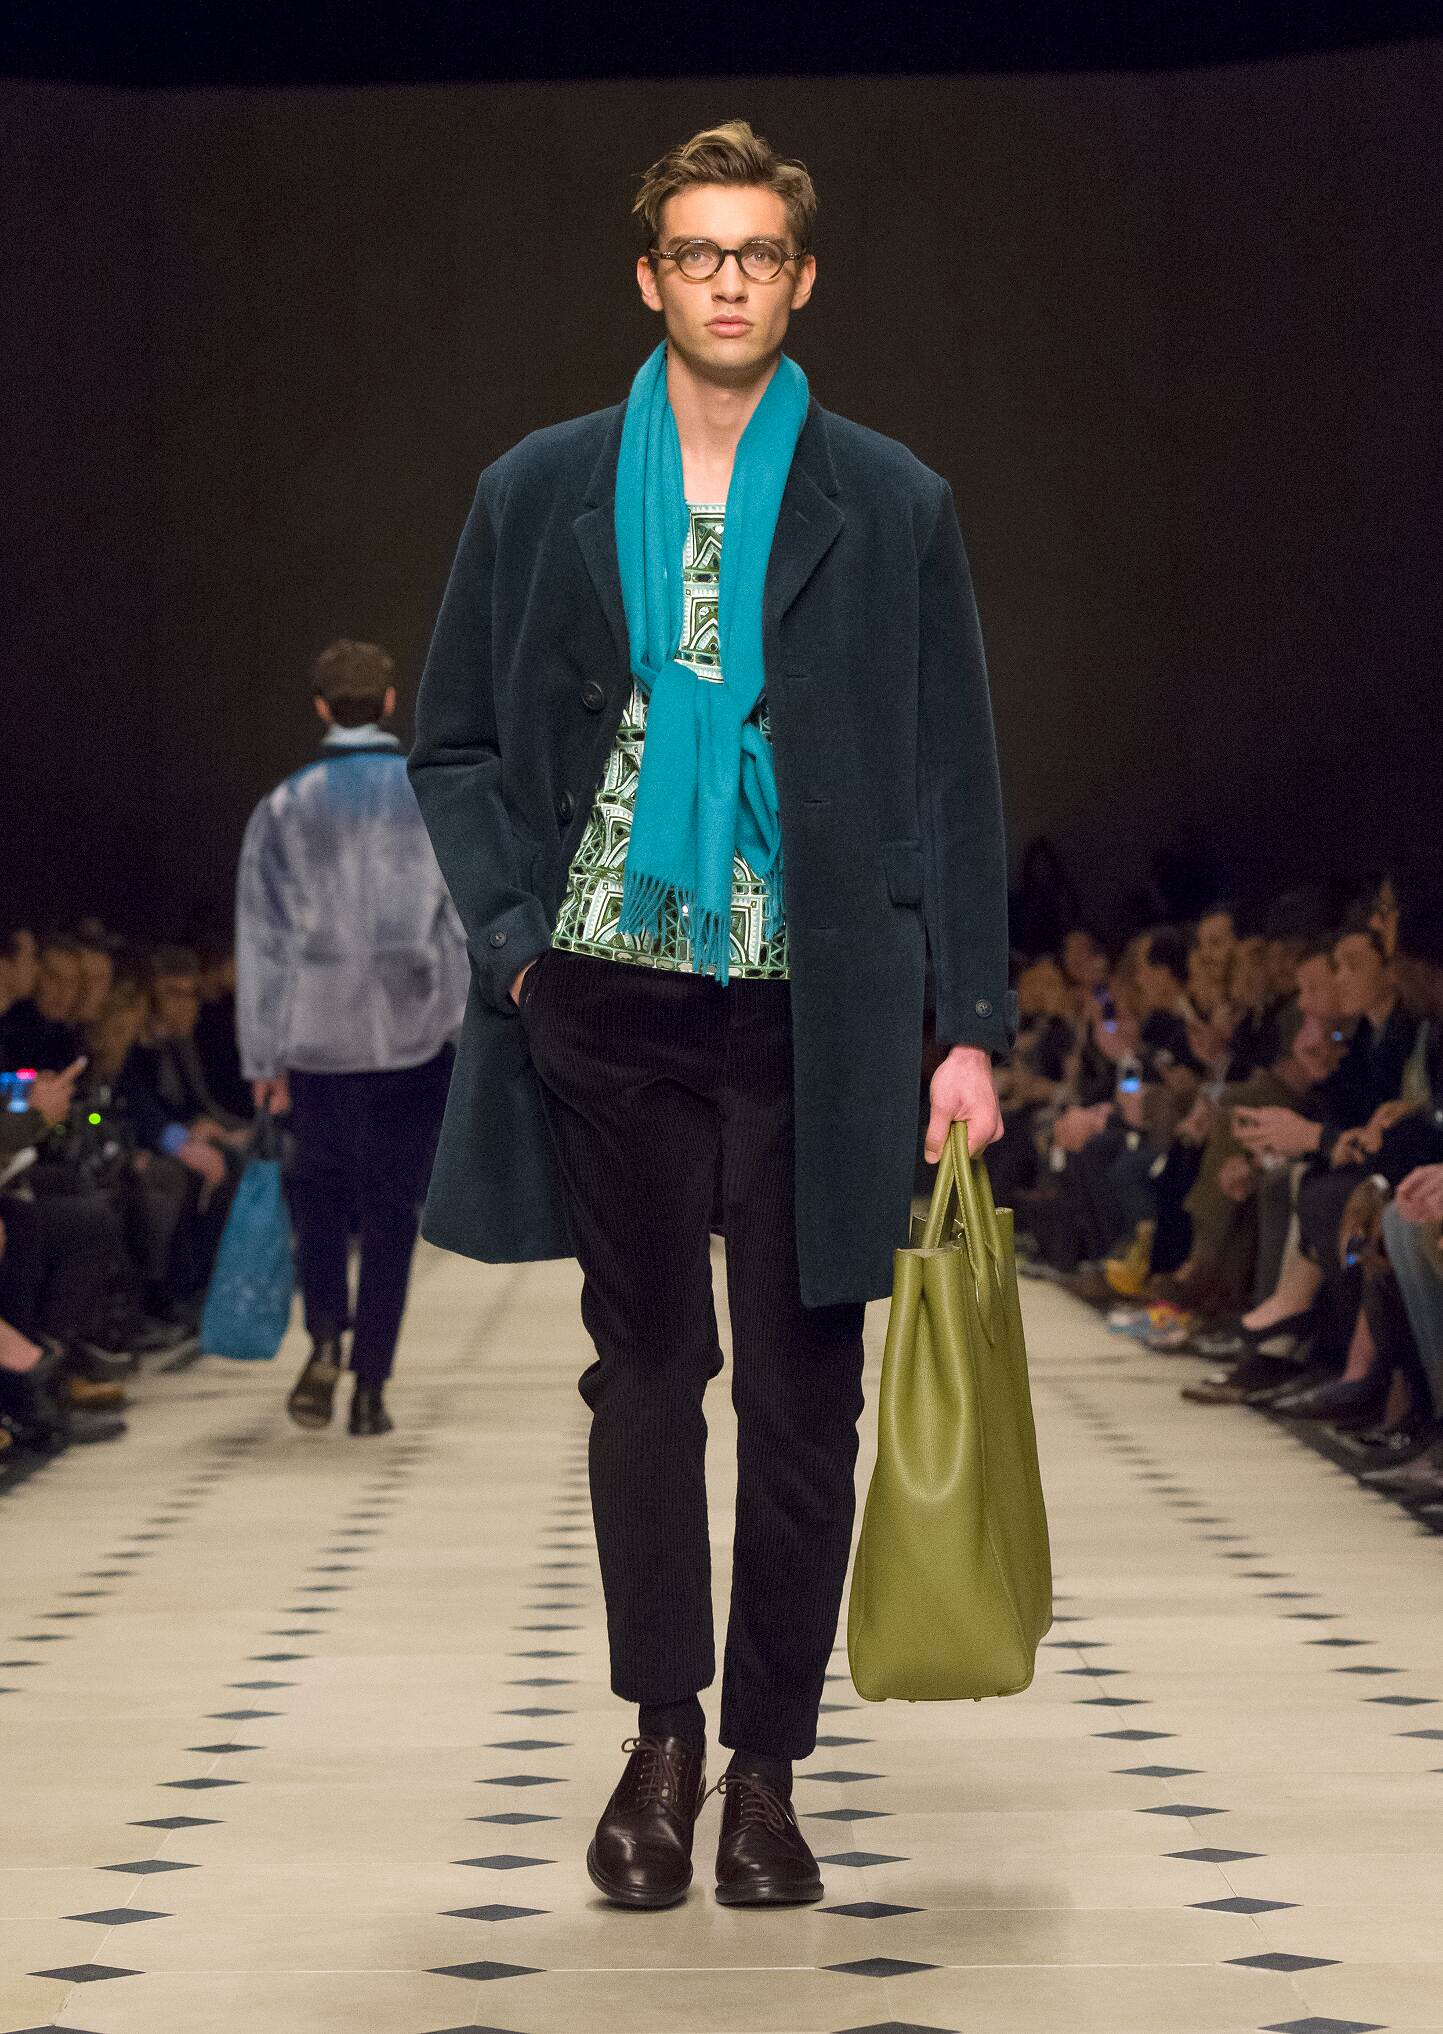 Winter 2016 Fashion Show Burberry Prorsum